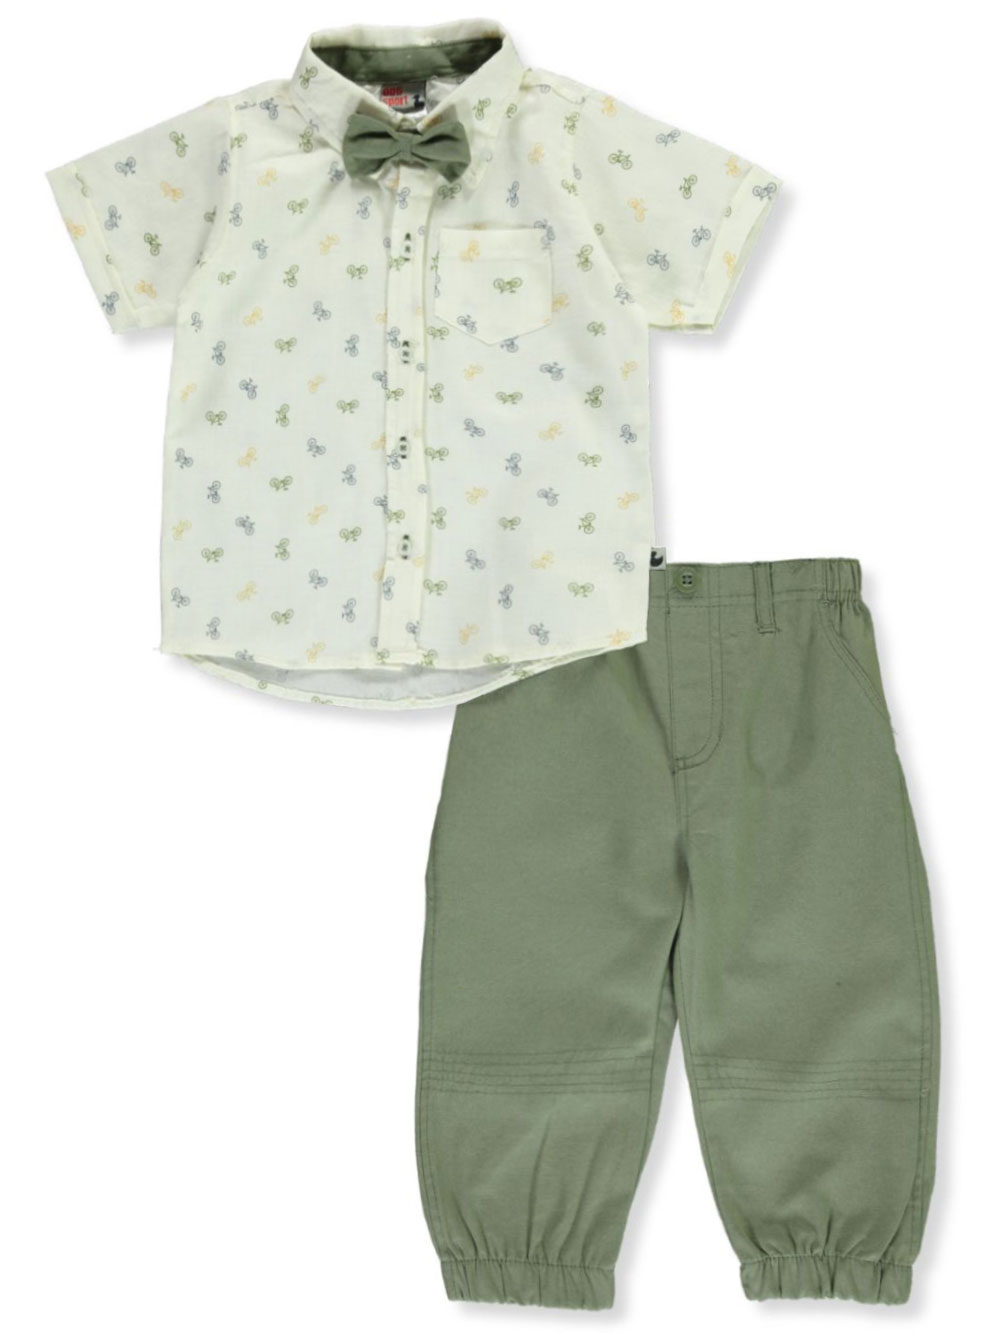 Gray and White Pant Sets